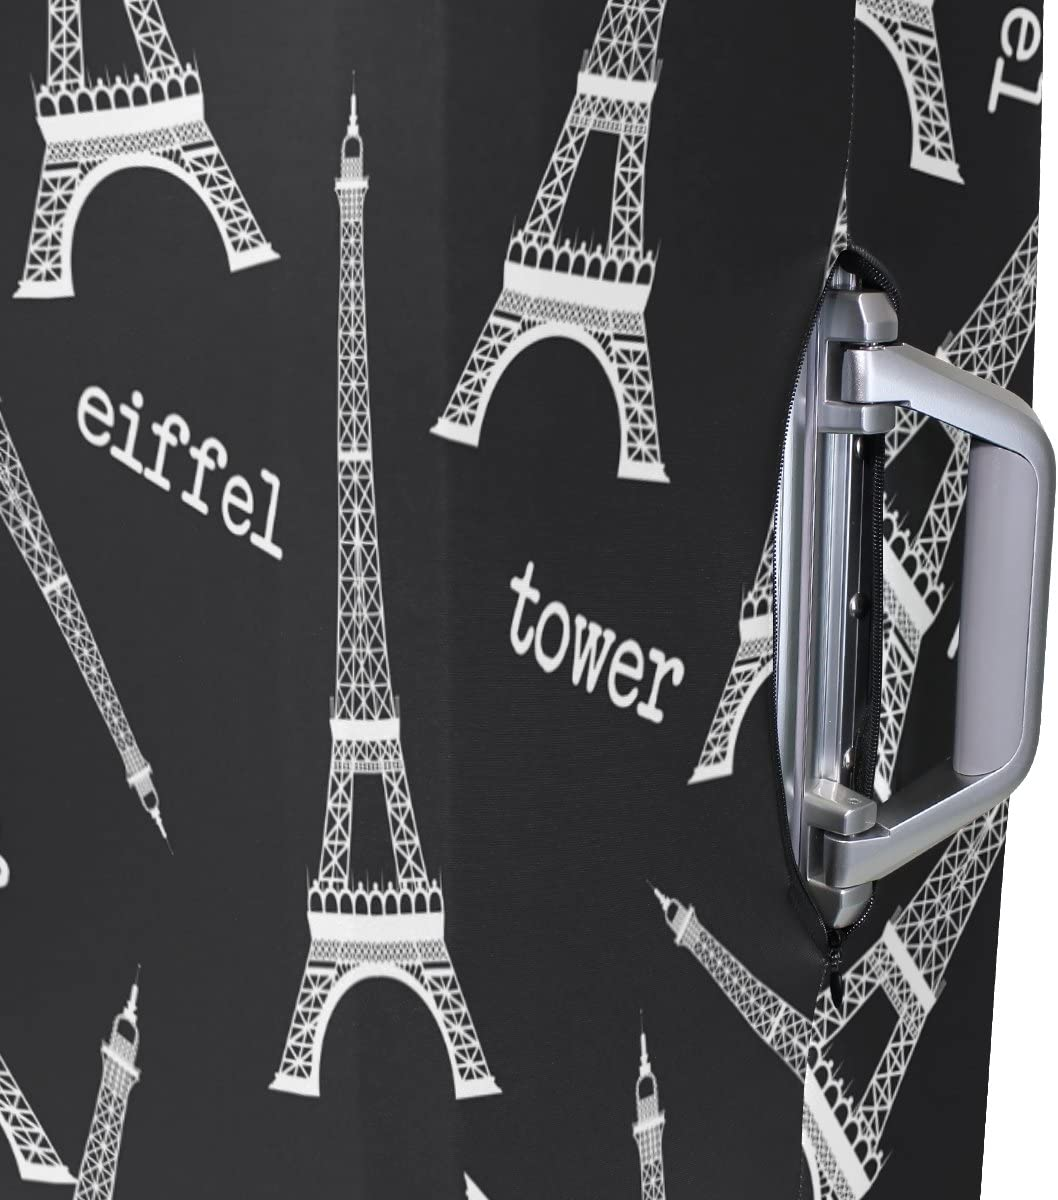 Luggage Protective Covers with Black White Eiffel Tower Washable Travel Luggage Cover 18-32 Inch